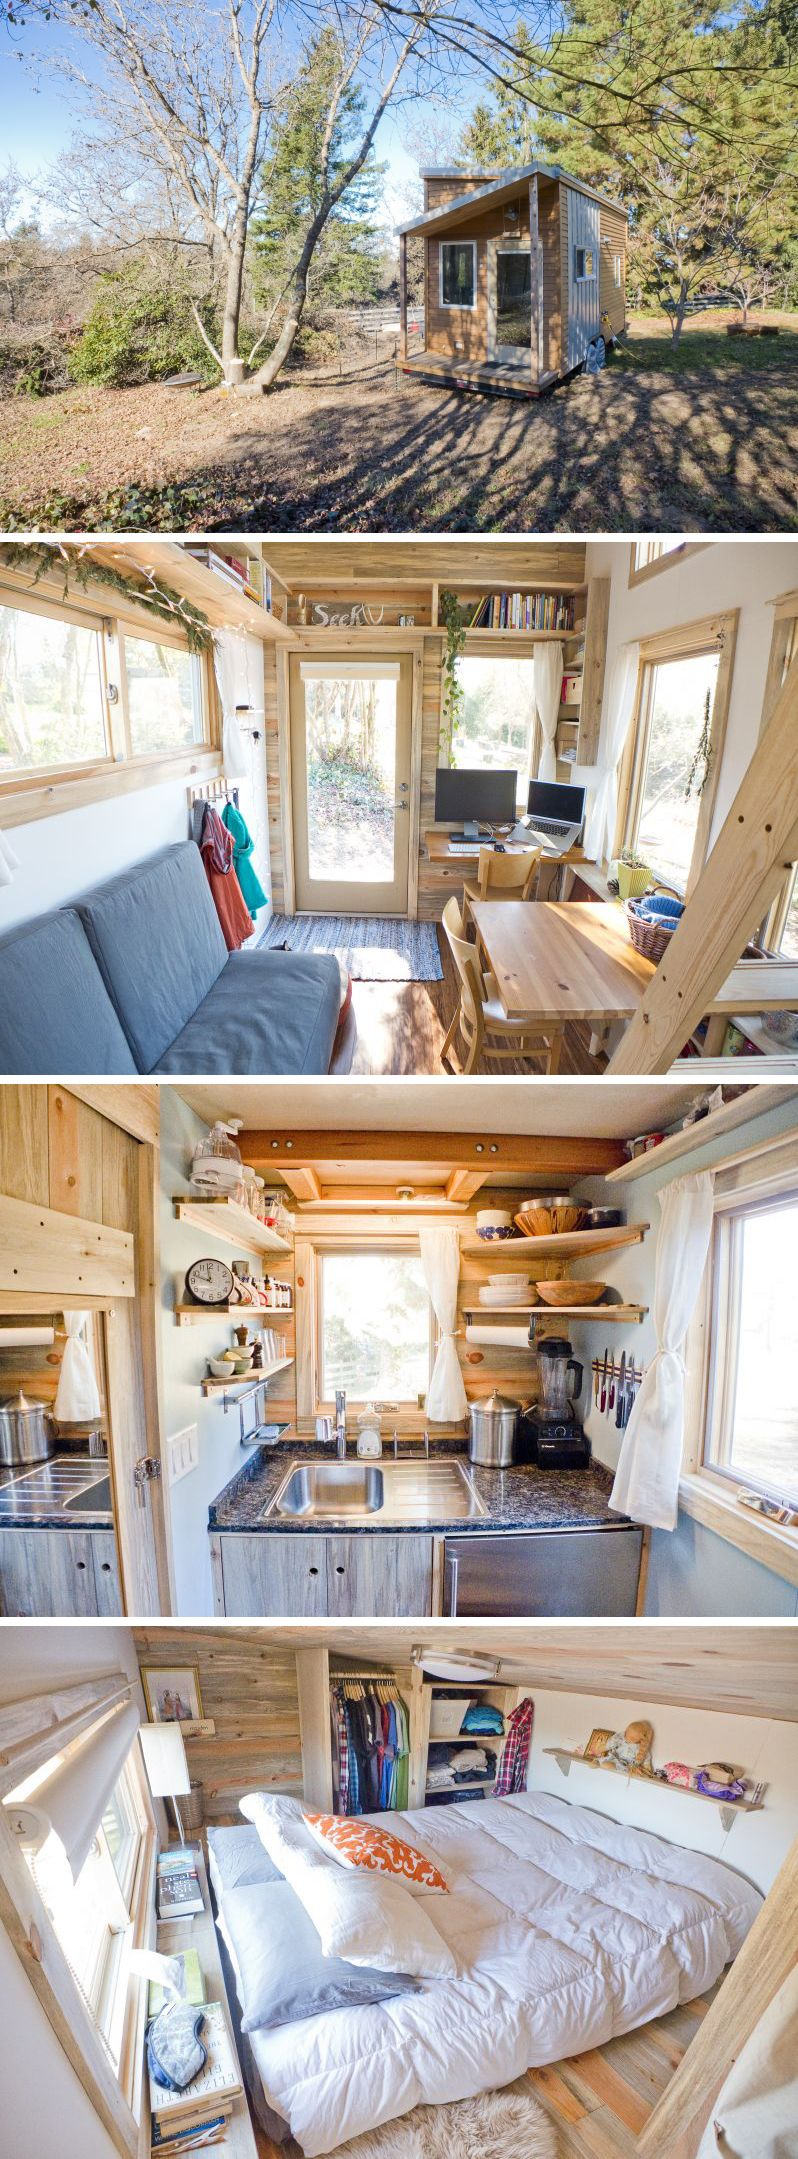 Pin by Op Pang on Home | Pinterest | Tiny houses, Small living and ...